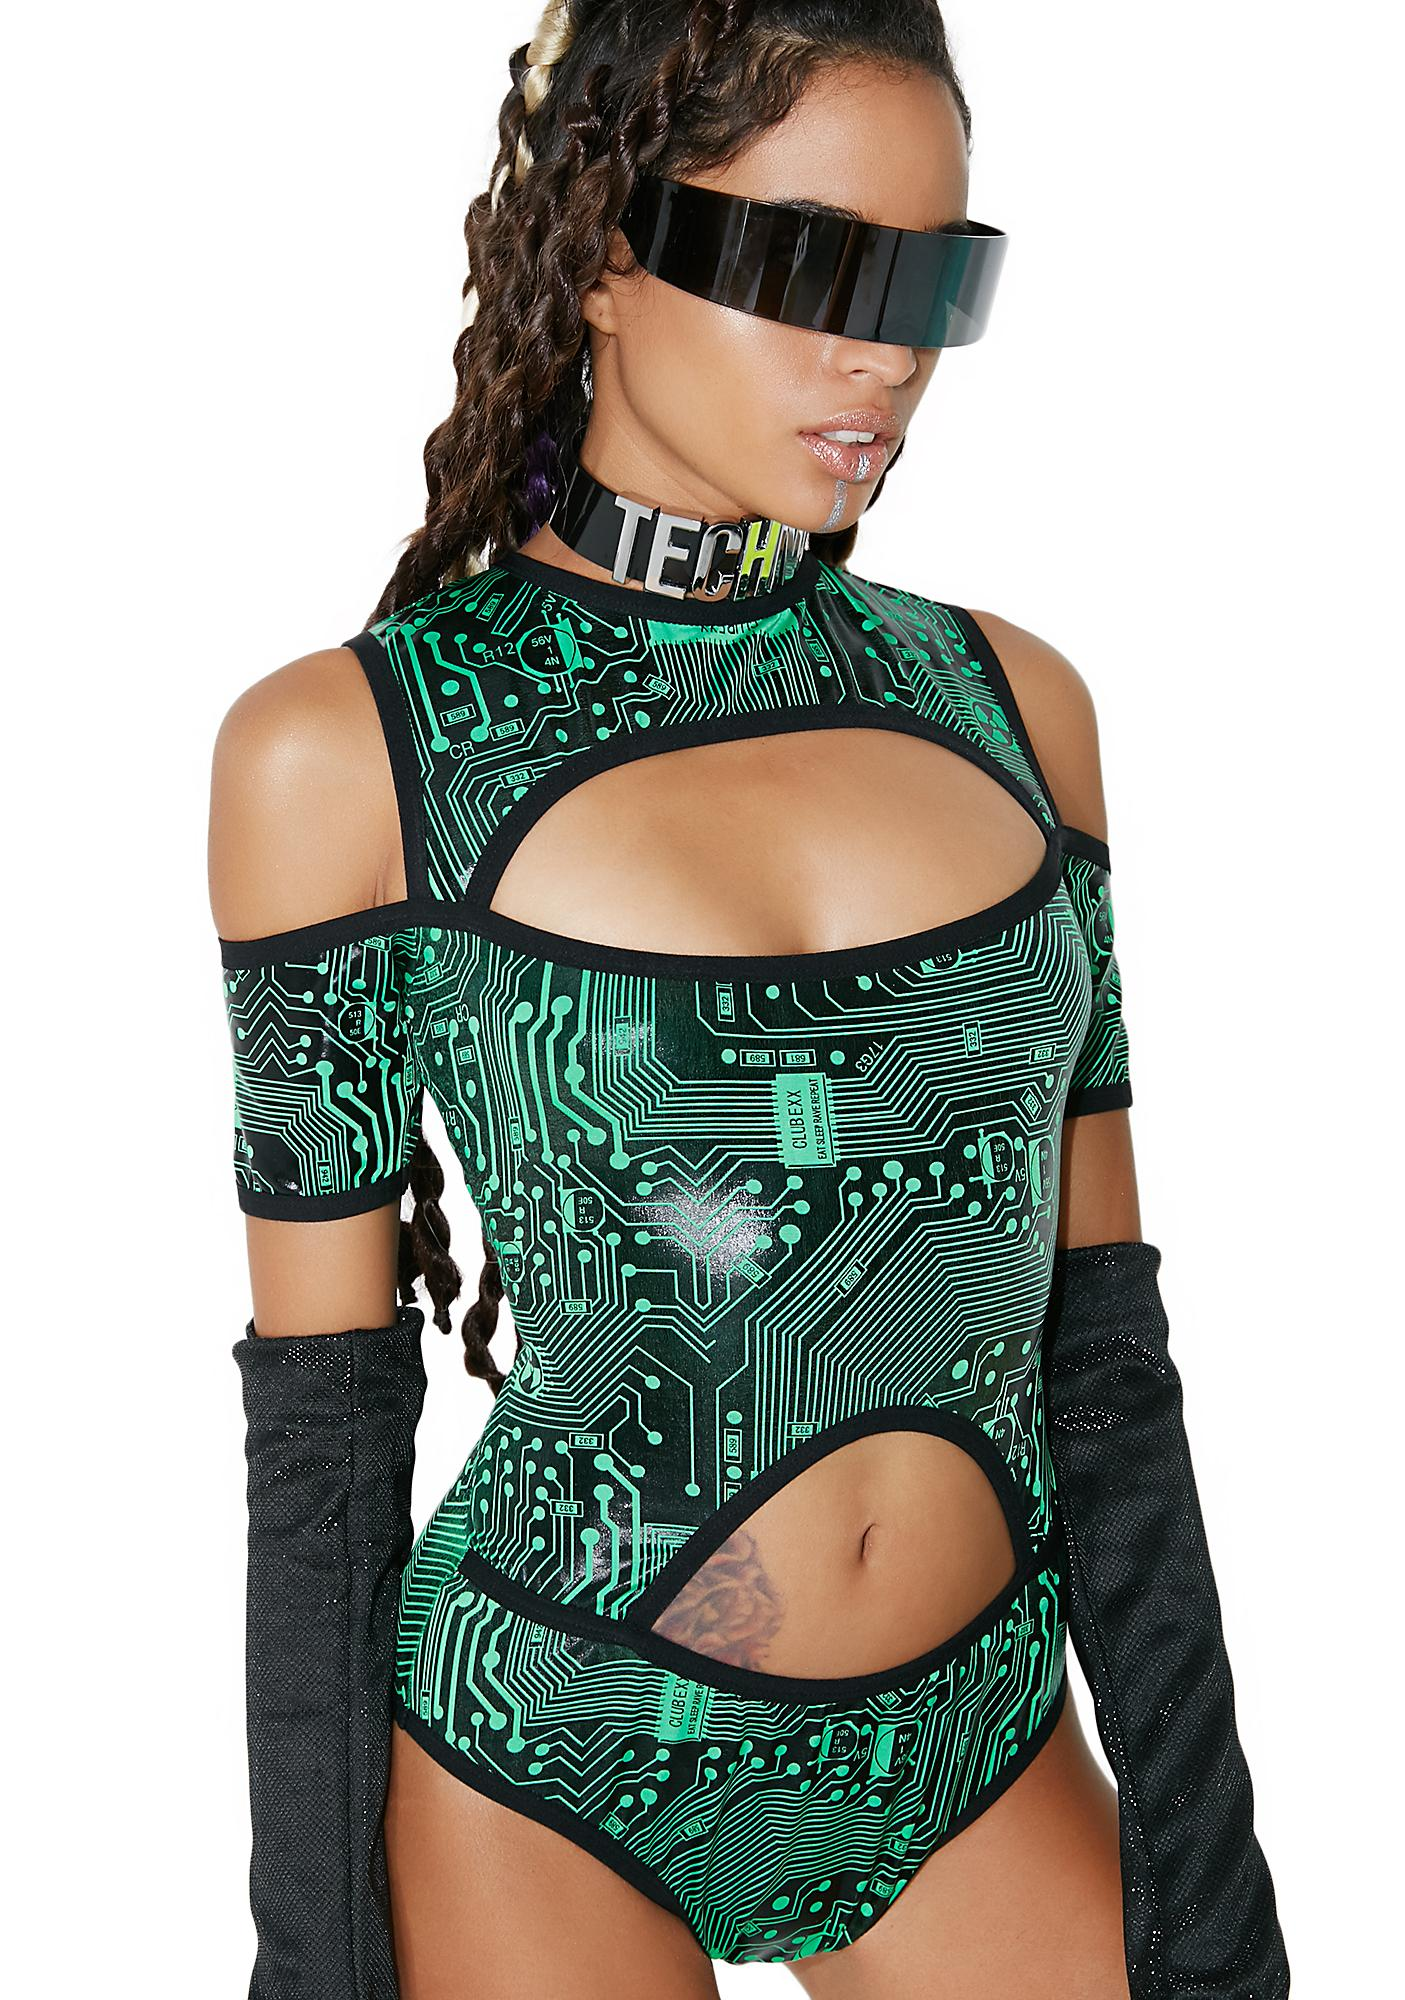 Club Exx Circuit Trippin' Cut-Out Bodysuit